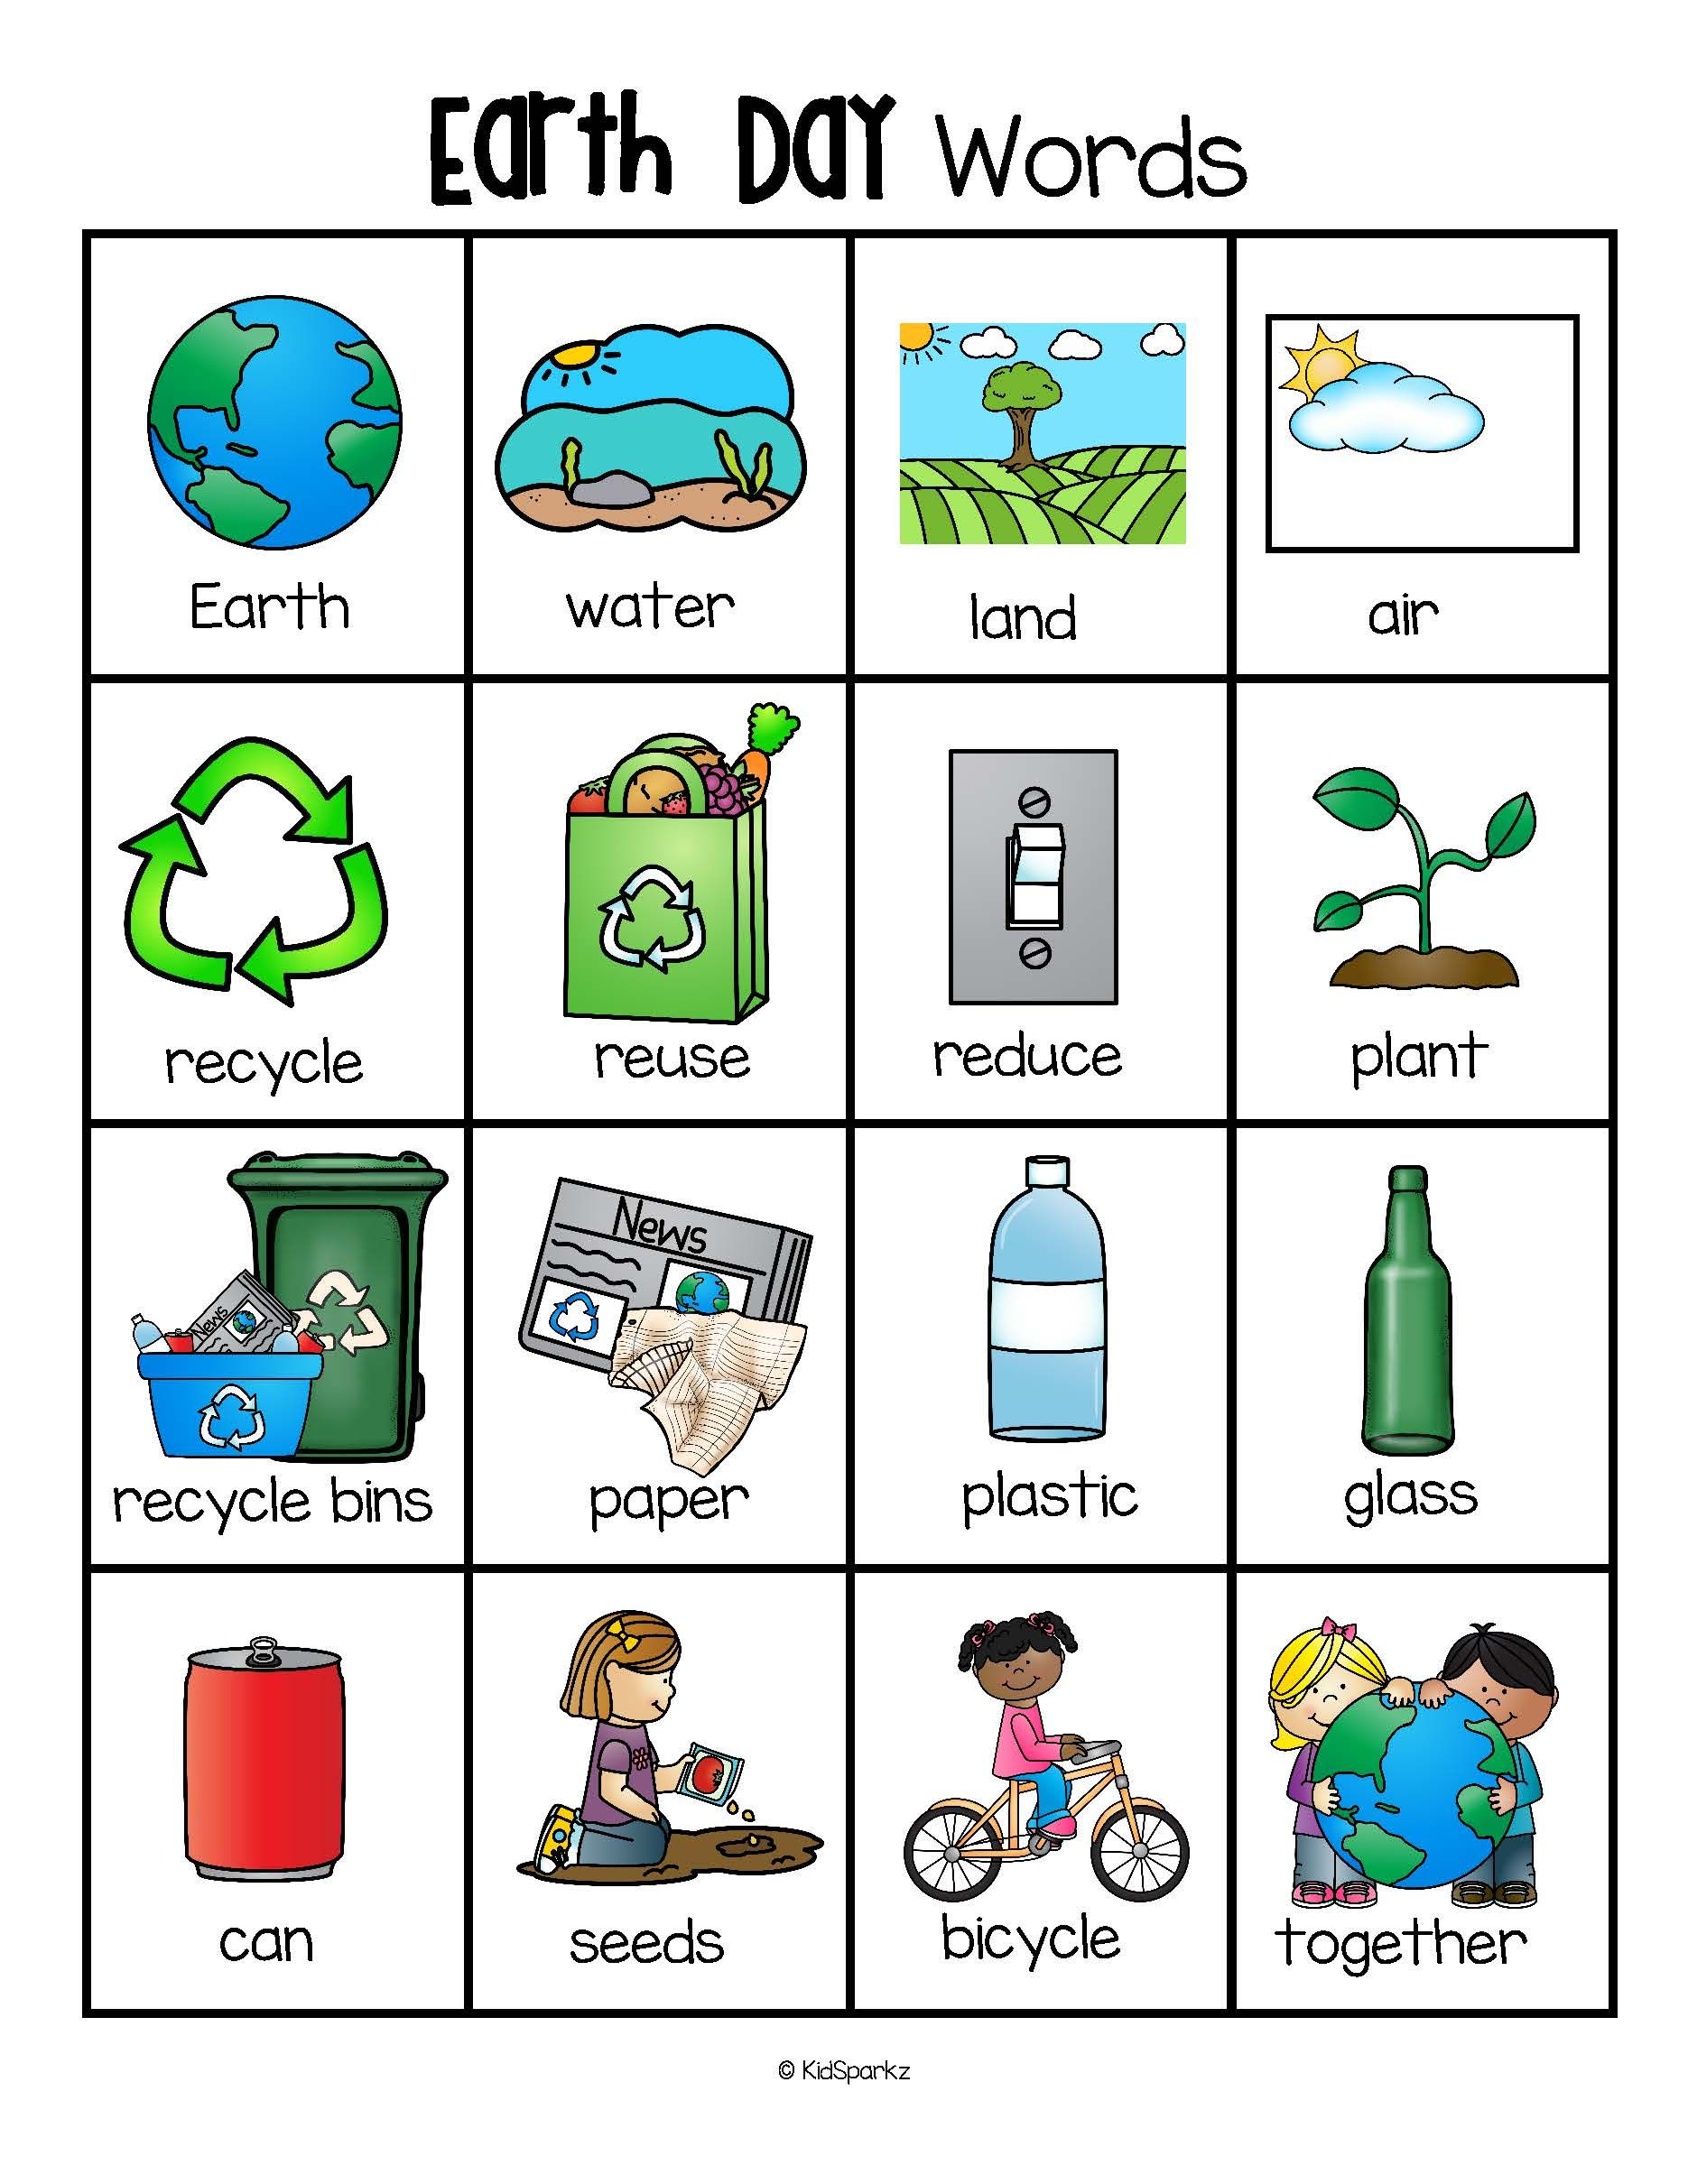 Earth Day Vocabulary Words Pictures Printable